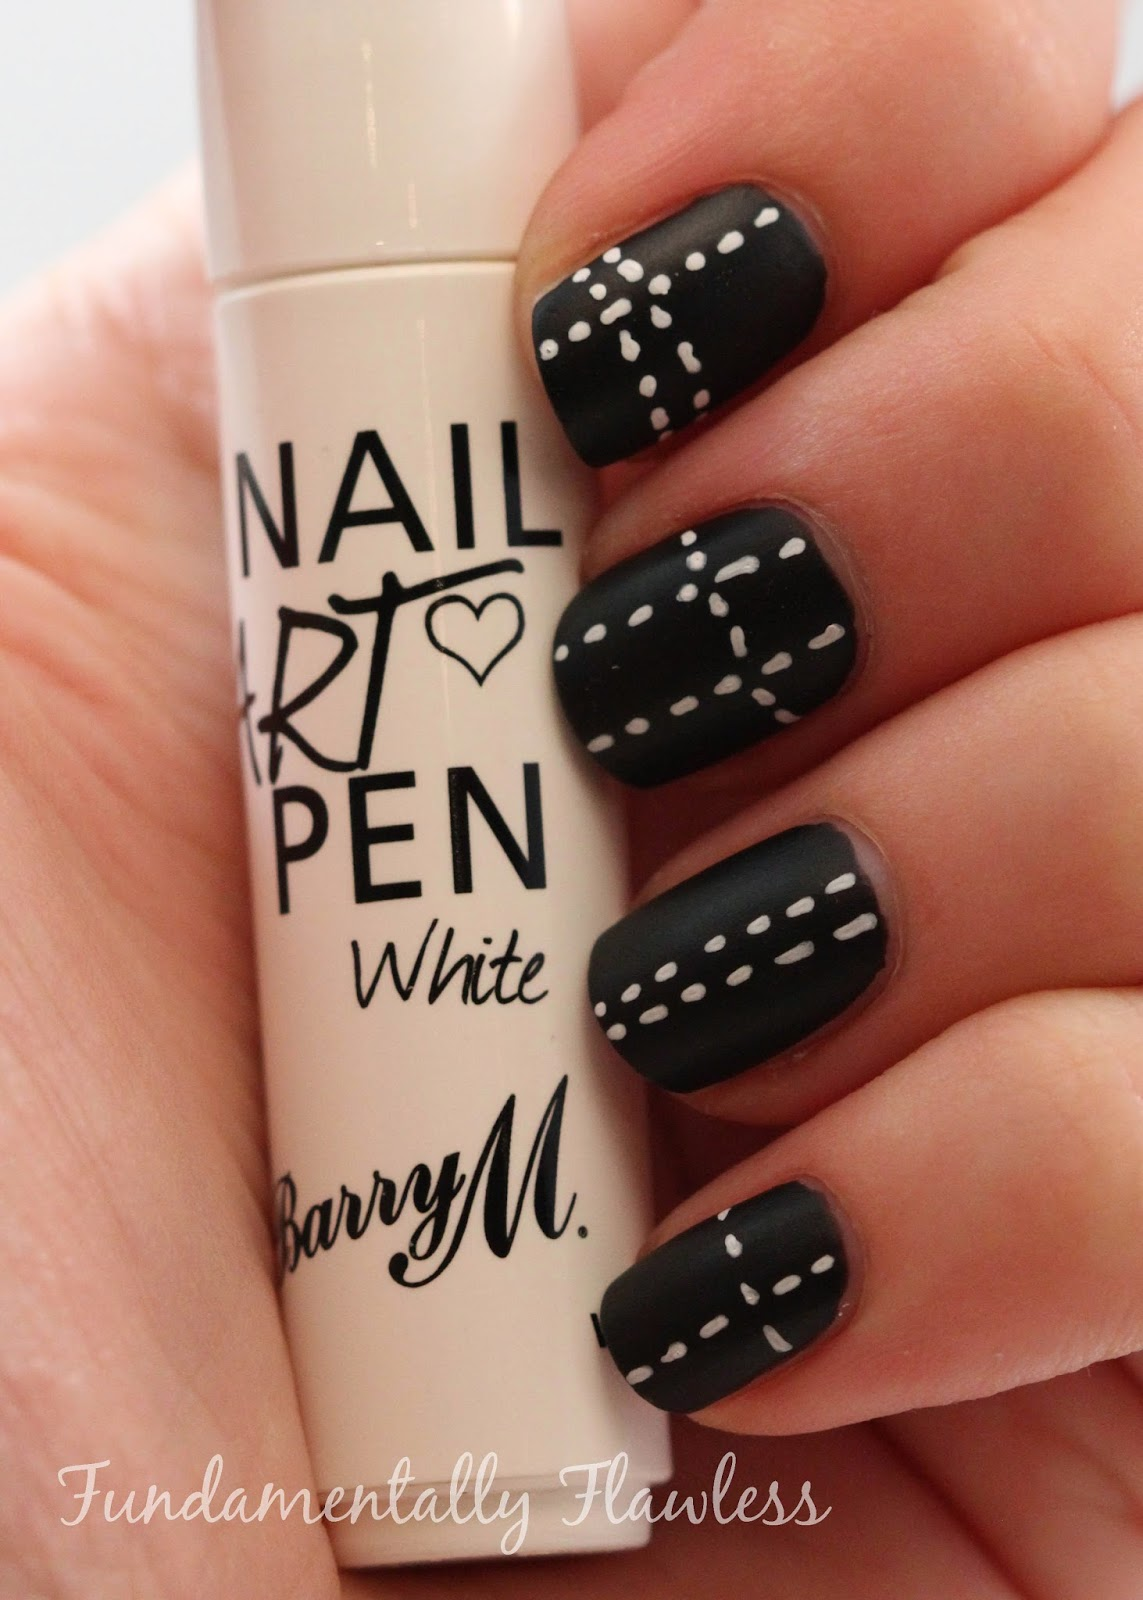 White nail art pen designs image collections nail art and nail black nail art pen designs choice image nail art and nail design black nail art pen prinsesfo Choice Image